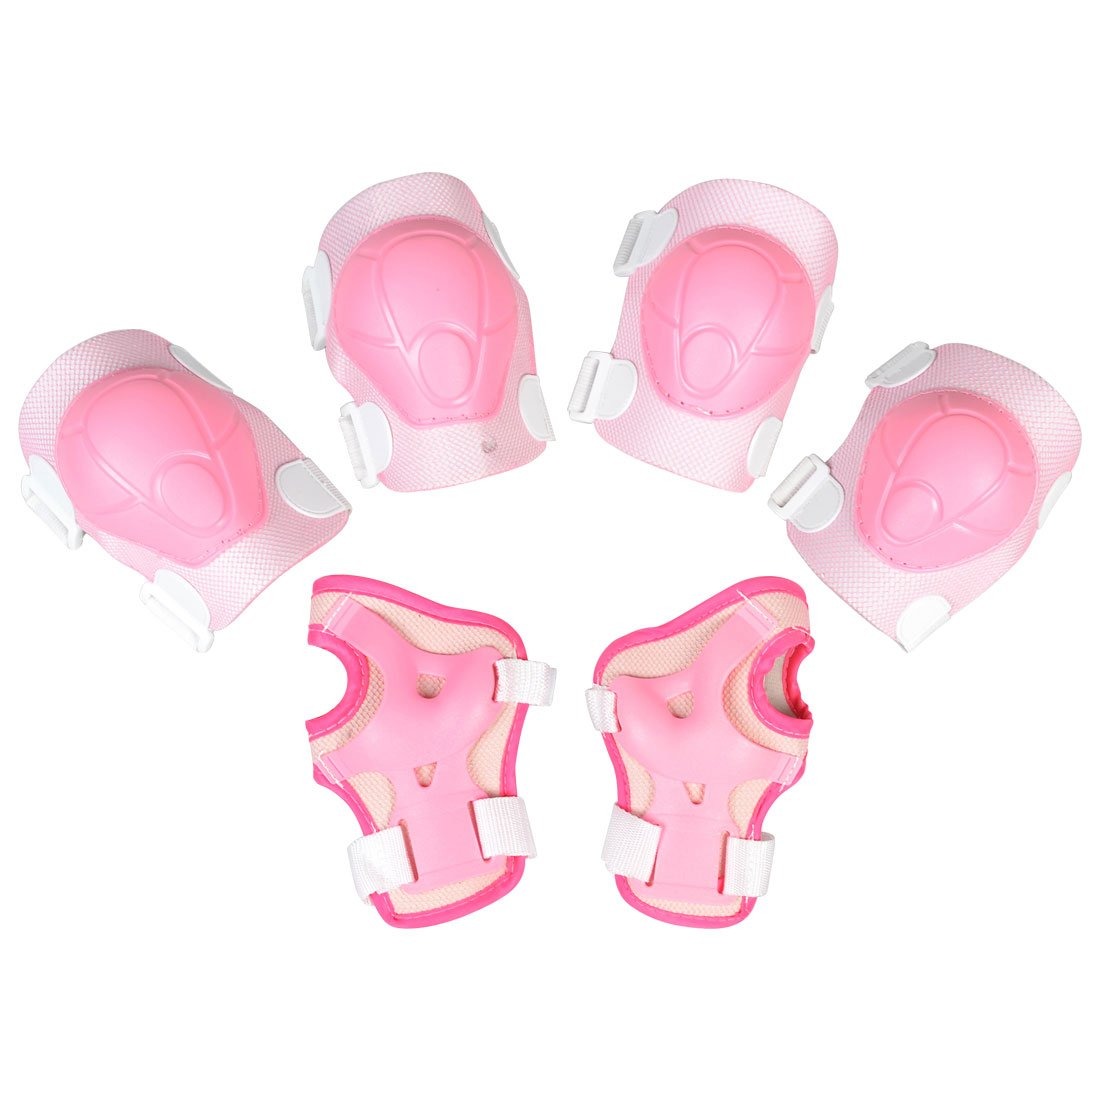 Como Children Pink White Protective Pads Palm Elbow Knee Protector Support Set 6 in 1,Free Shipping(China (Mainland))